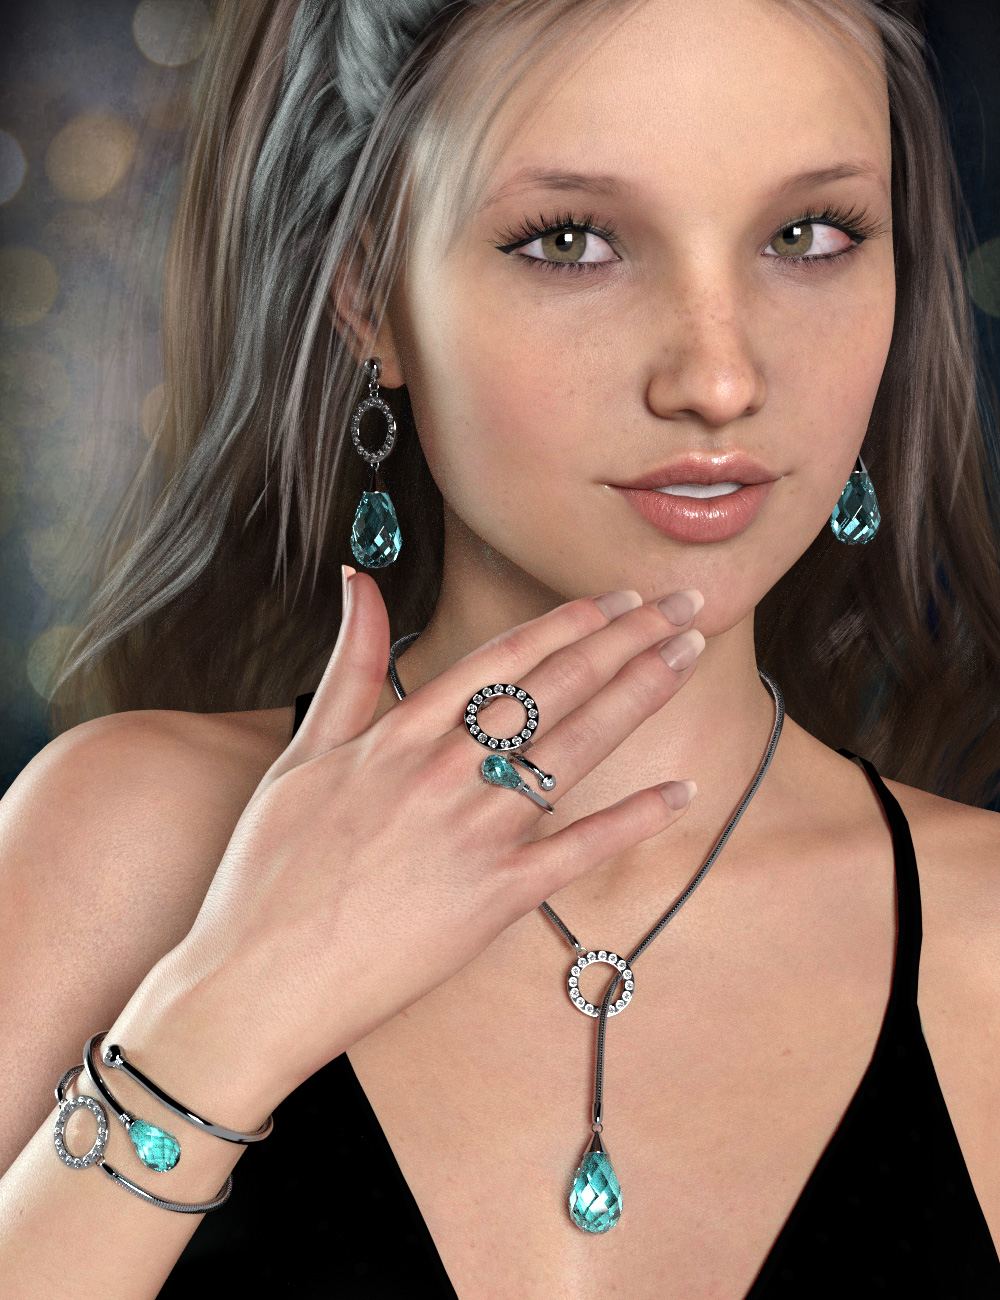 Droplet Jewelry for Genesis 8 Female(s) by: esha, 3D Models by Daz 3D